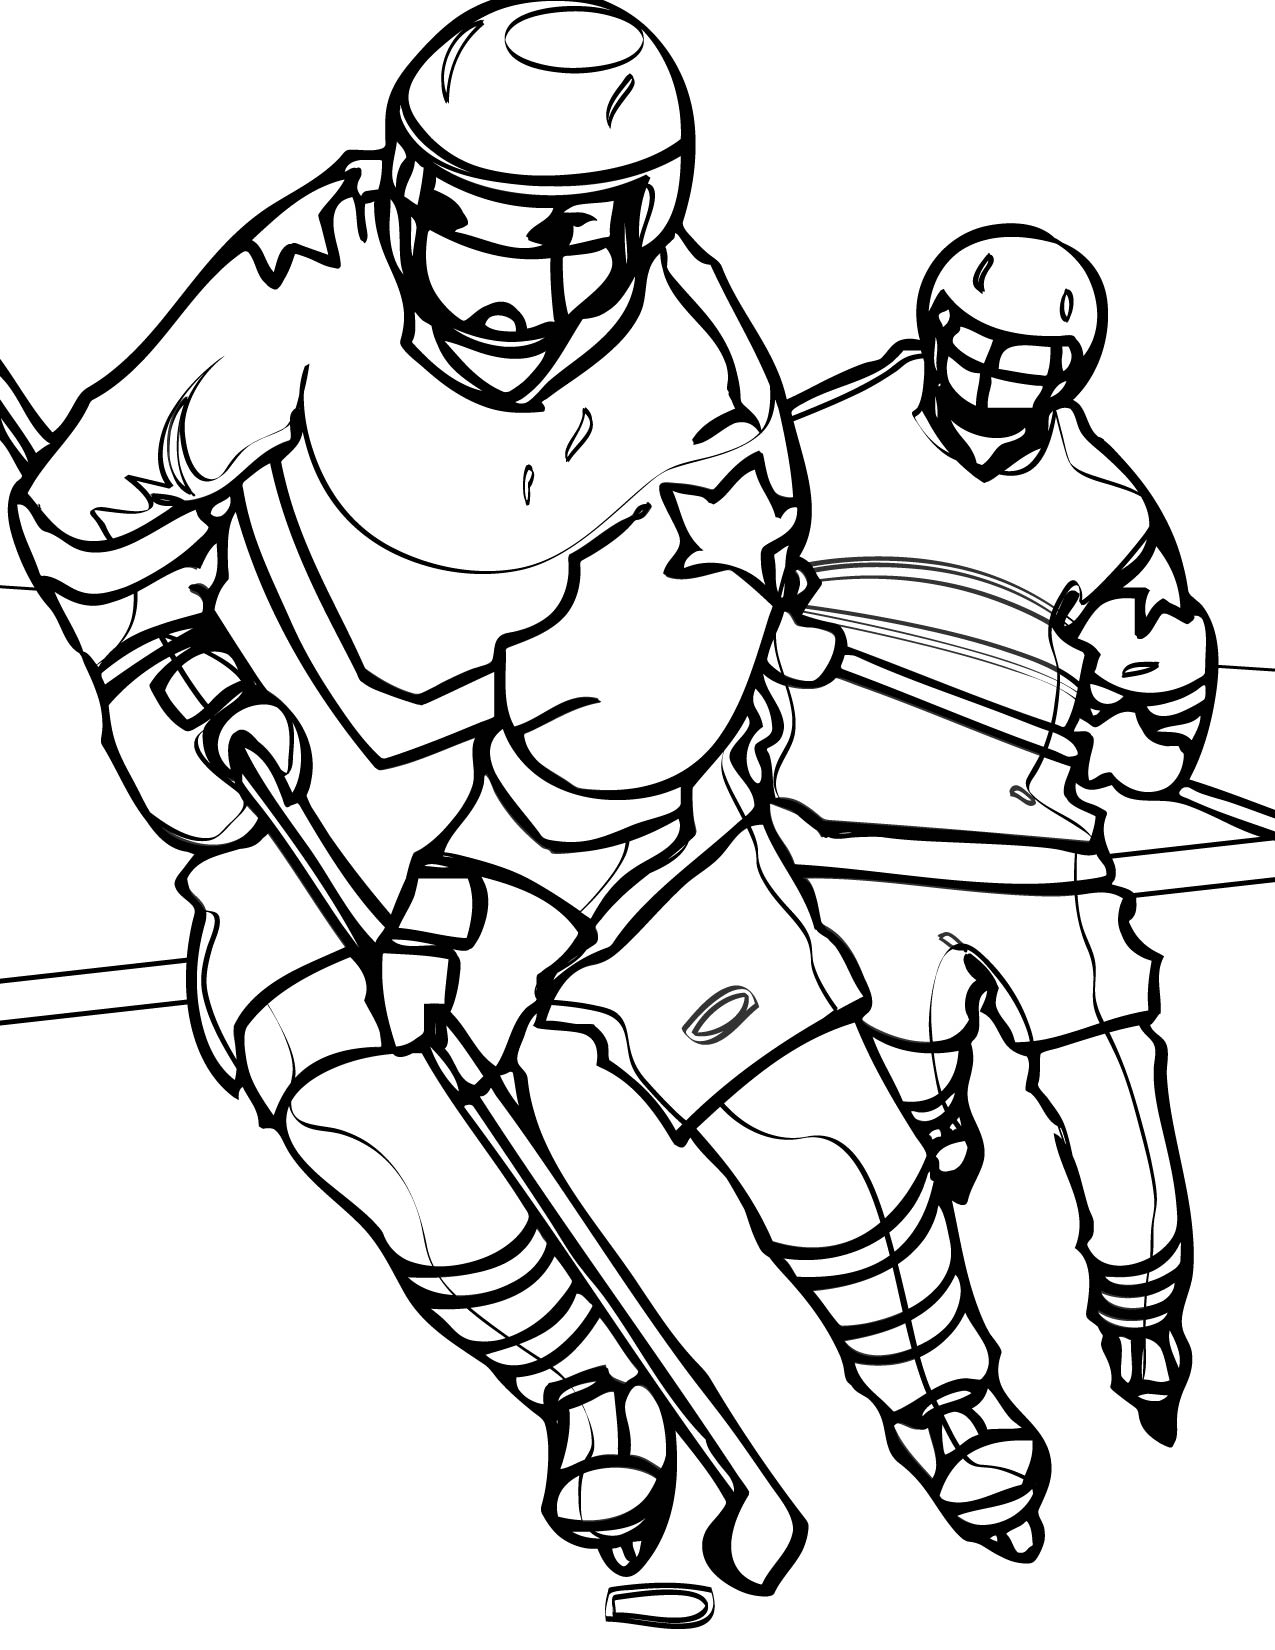 1275x1650 Hockey Coloring Page